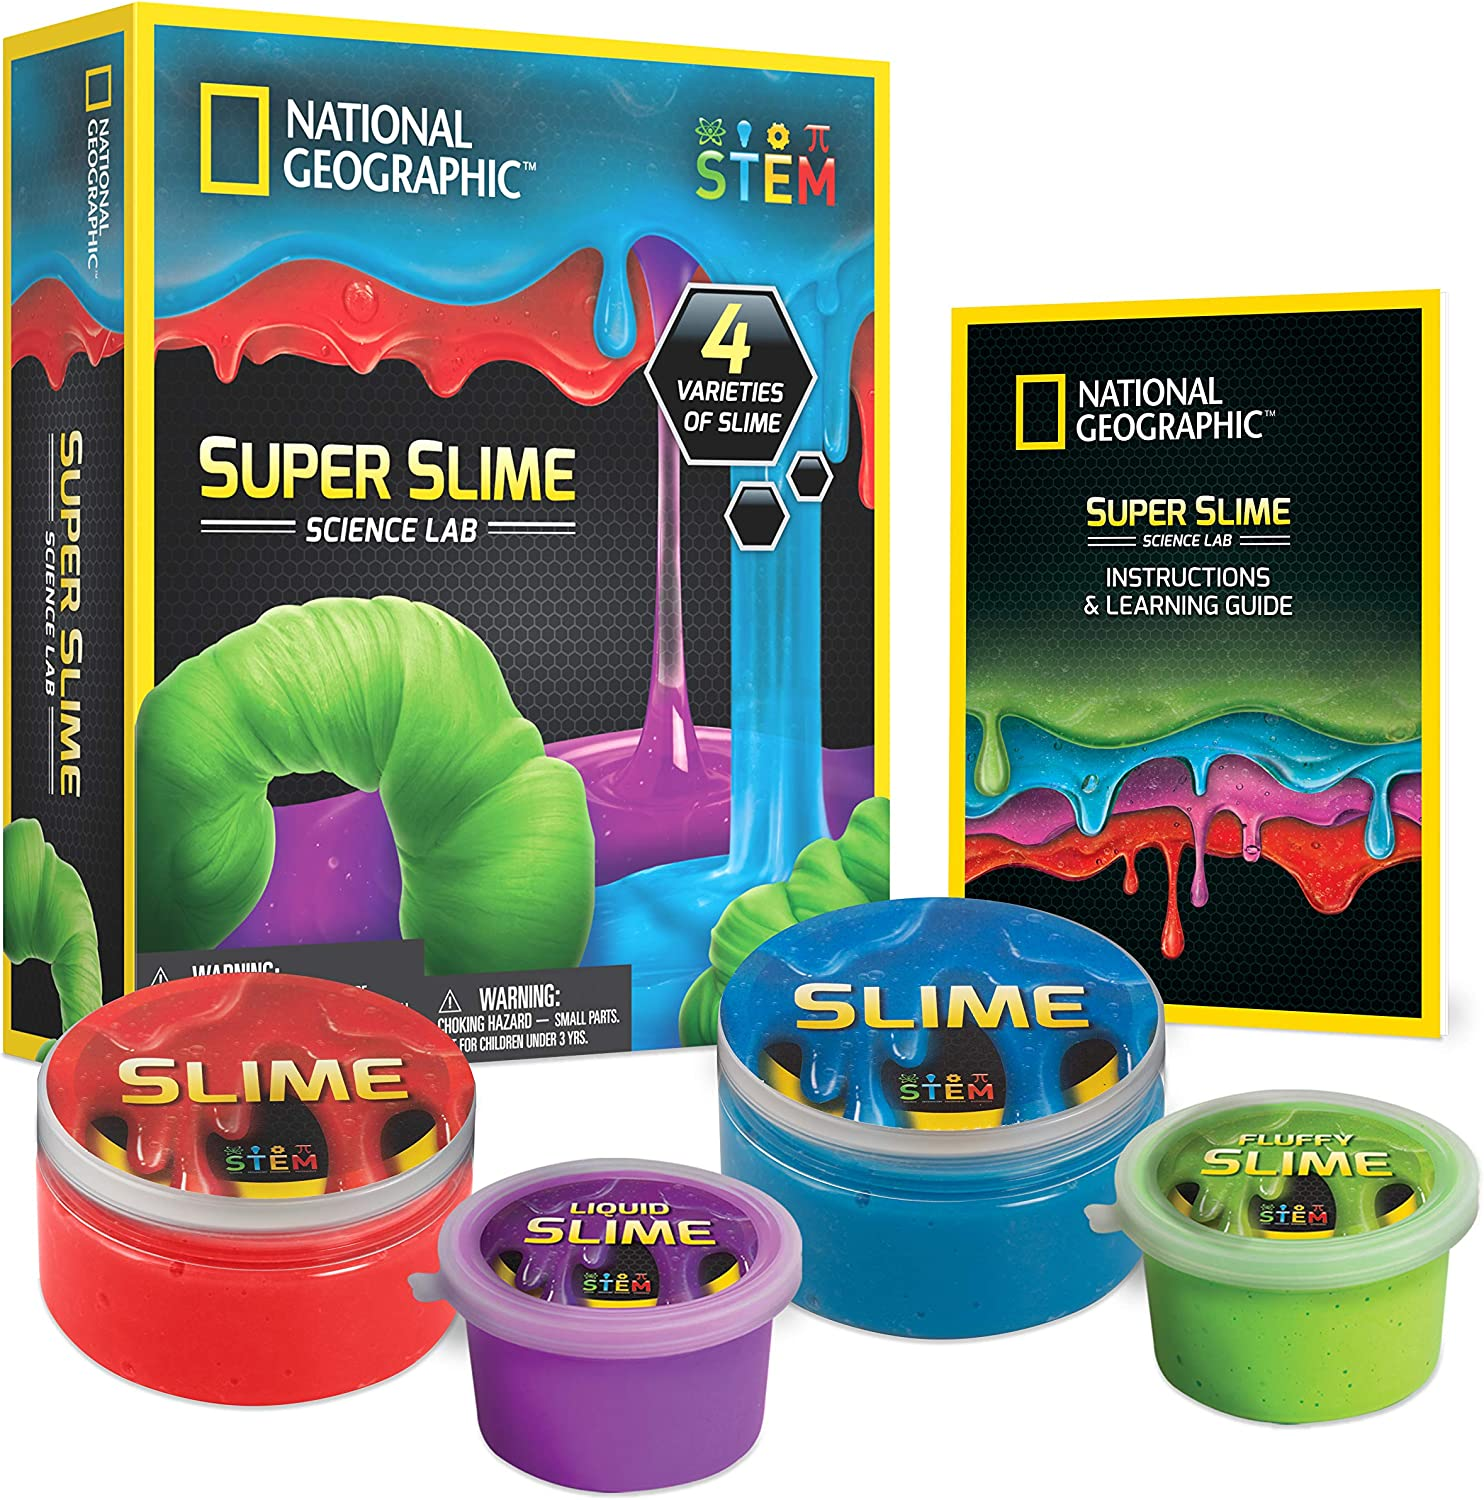 NATIONAL GEOGRAPHIC Super Science Lab – Slime Kit Includes Green Fluffy Slime, DIY Blue & Red Glow-in-The-Dark Slime, Purple Liquid Slime, Containers, Great Stem Toy for Boys & Girls